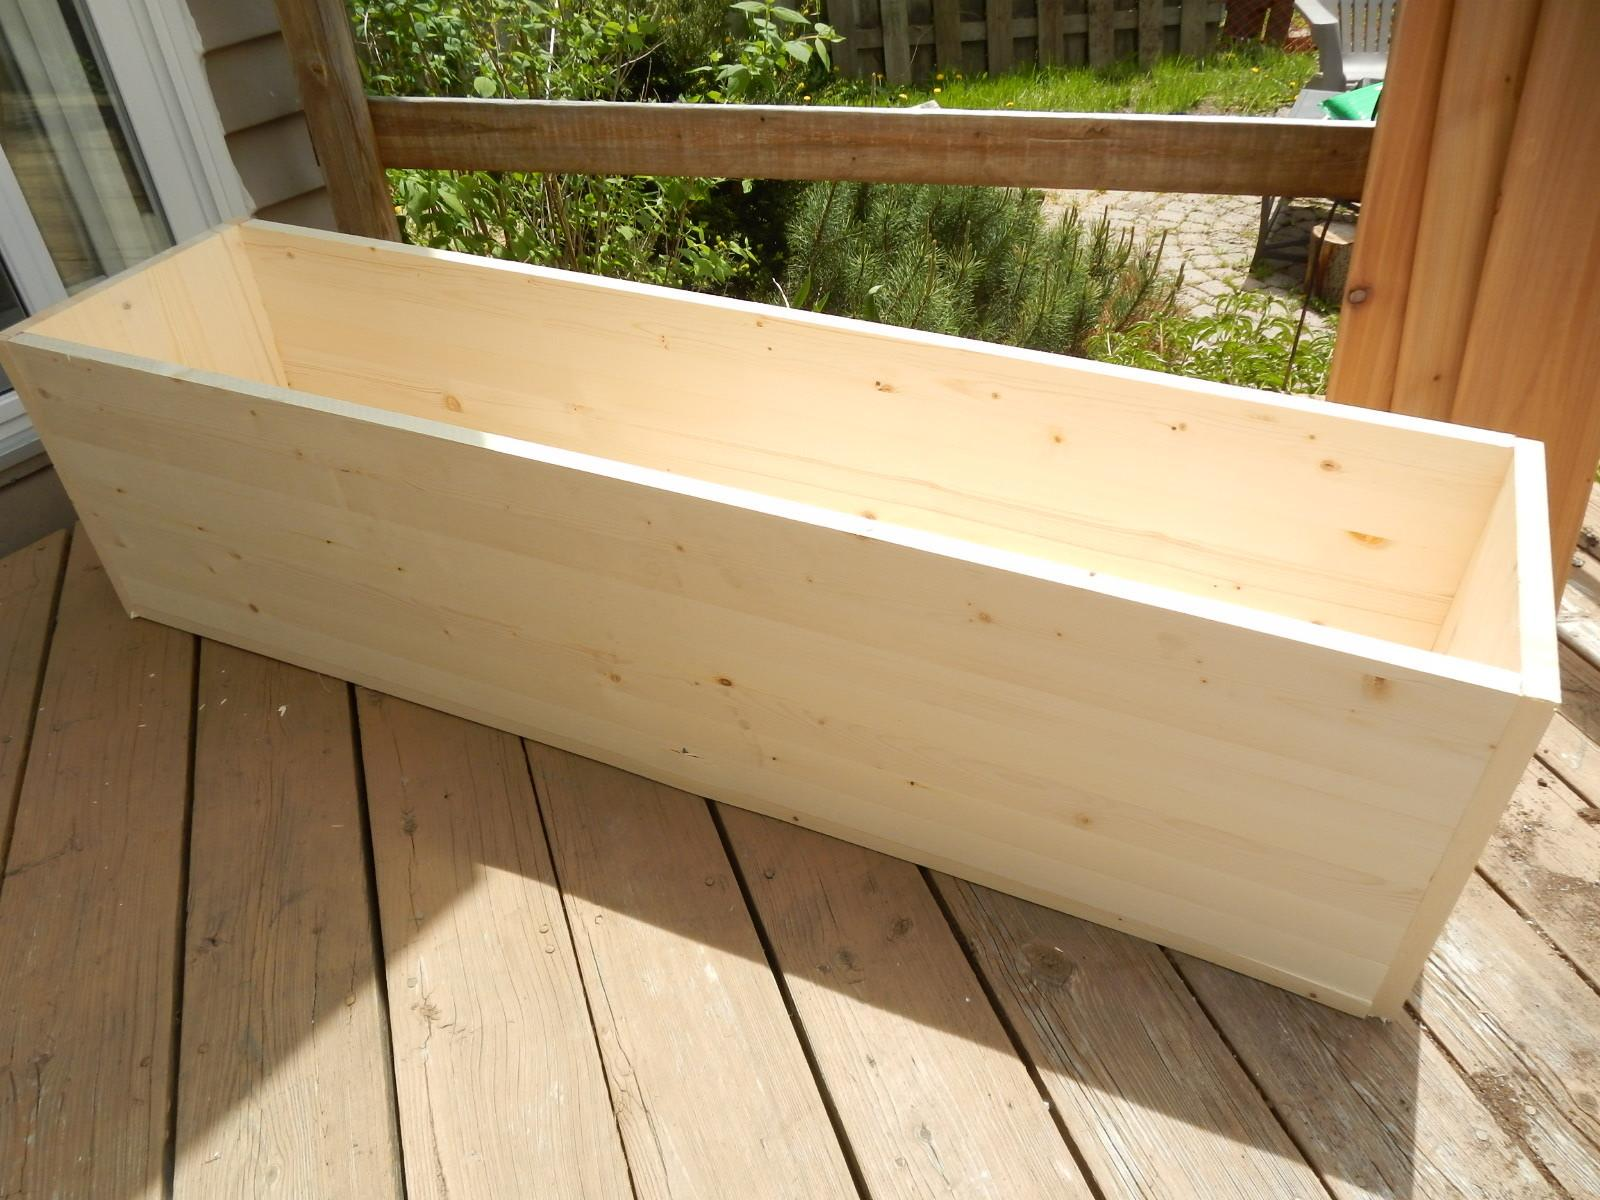 Planting Privacy Diy Wood Planter Just Decorate